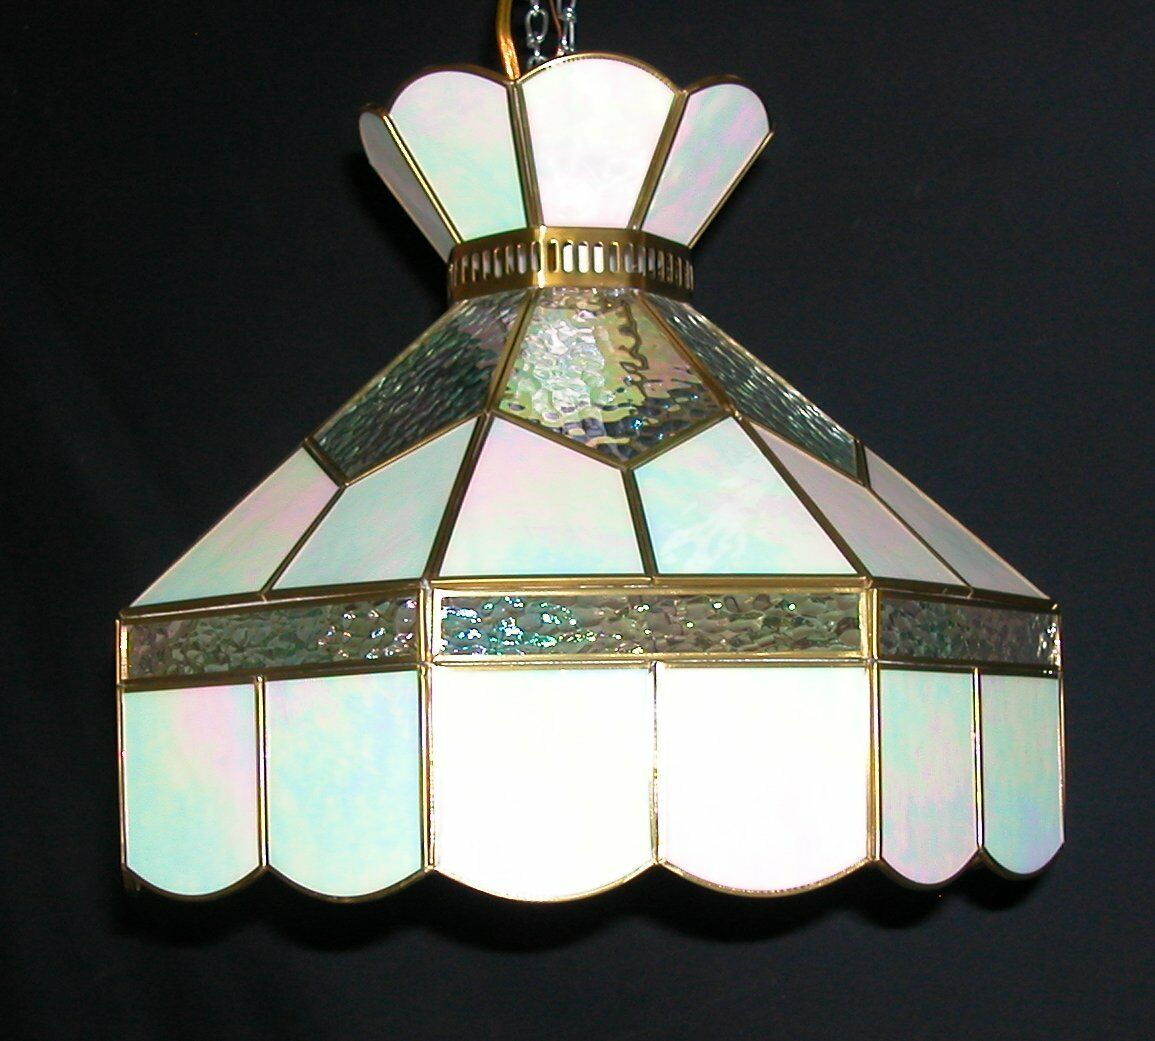 tiffany style stained glass hanging land light fixture swag. Black Bedroom Furniture Sets. Home Design Ideas